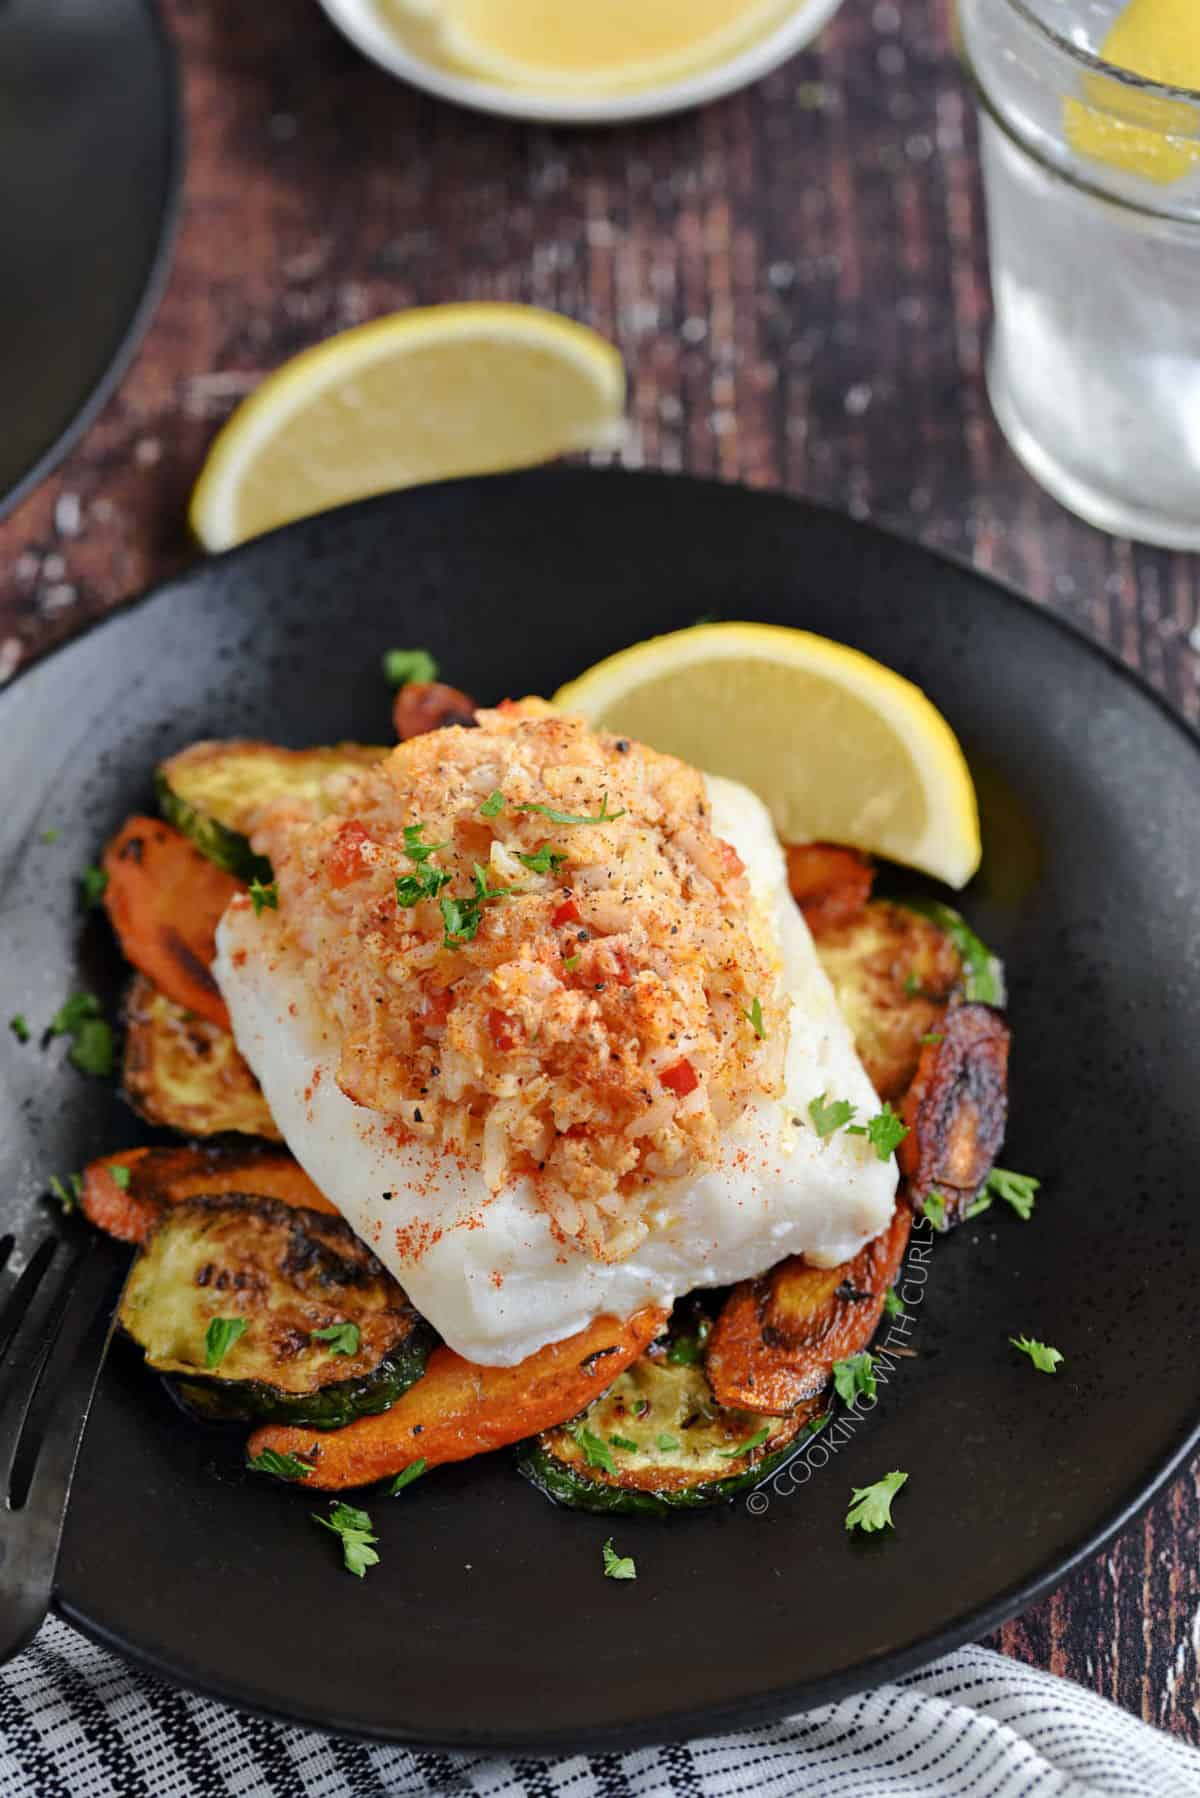 Shrimp and Crab Stuffed Cod on a bed of sautéed zucchini and carrots with a lemon wedge on the side.